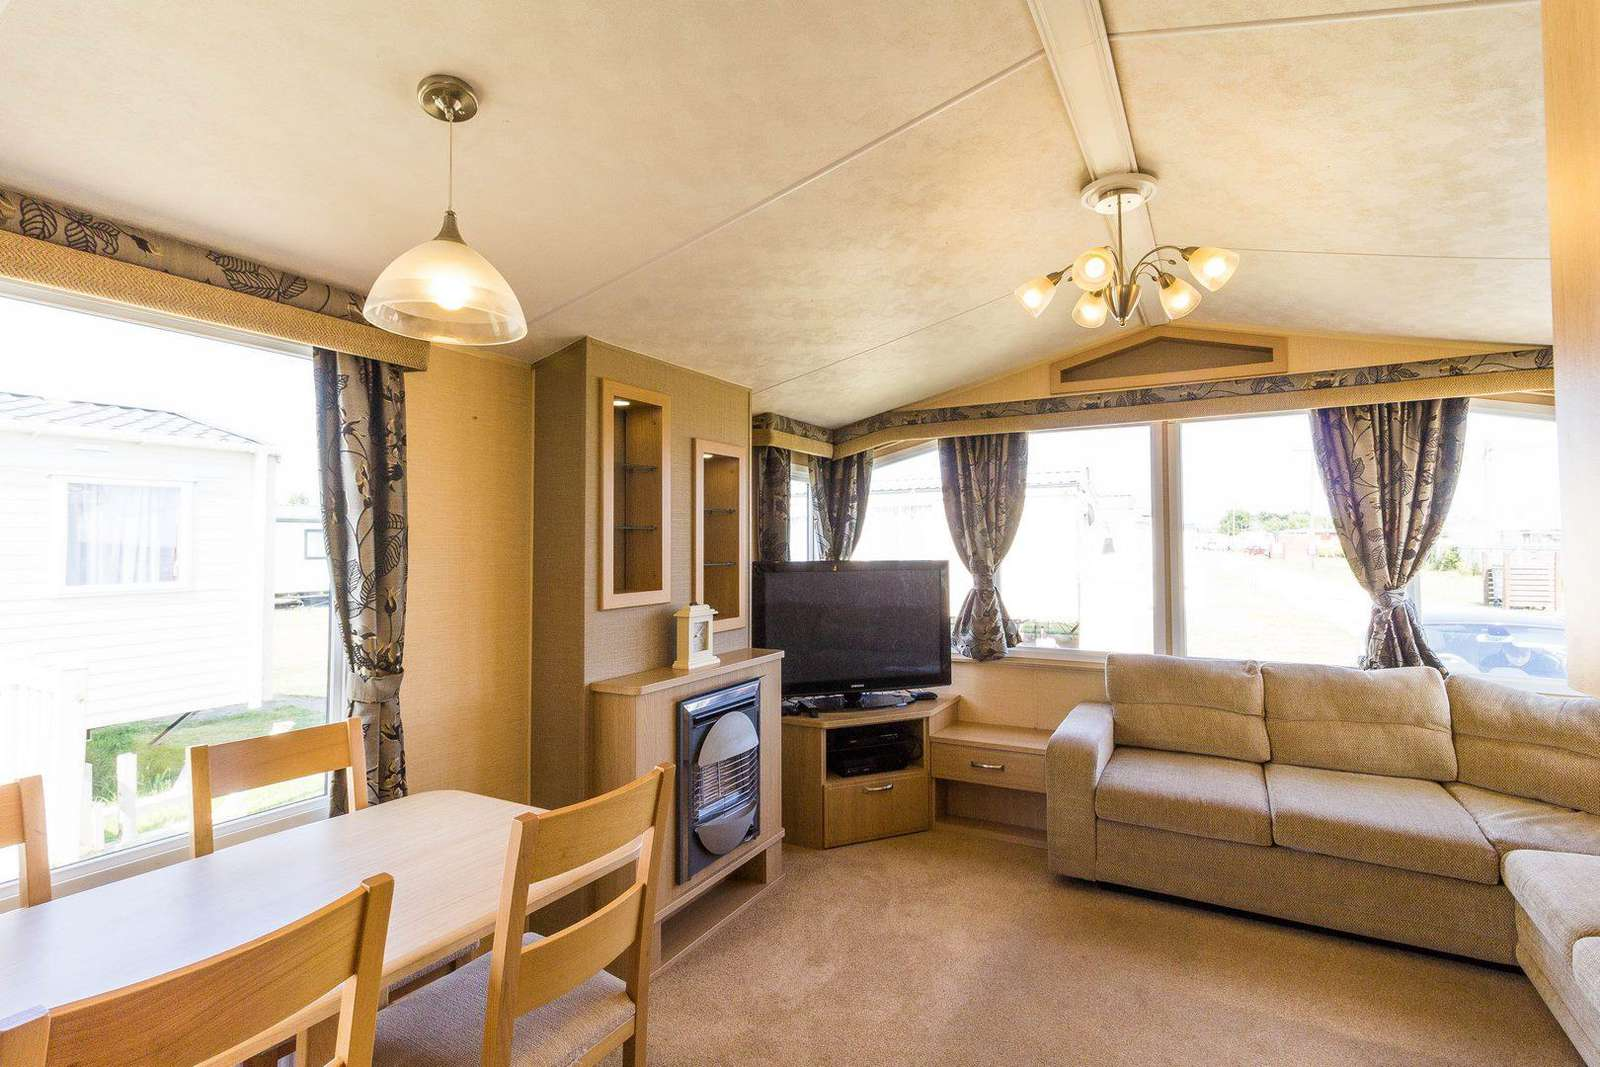 Come and stay in this private accommodation with us at 2cHolidays